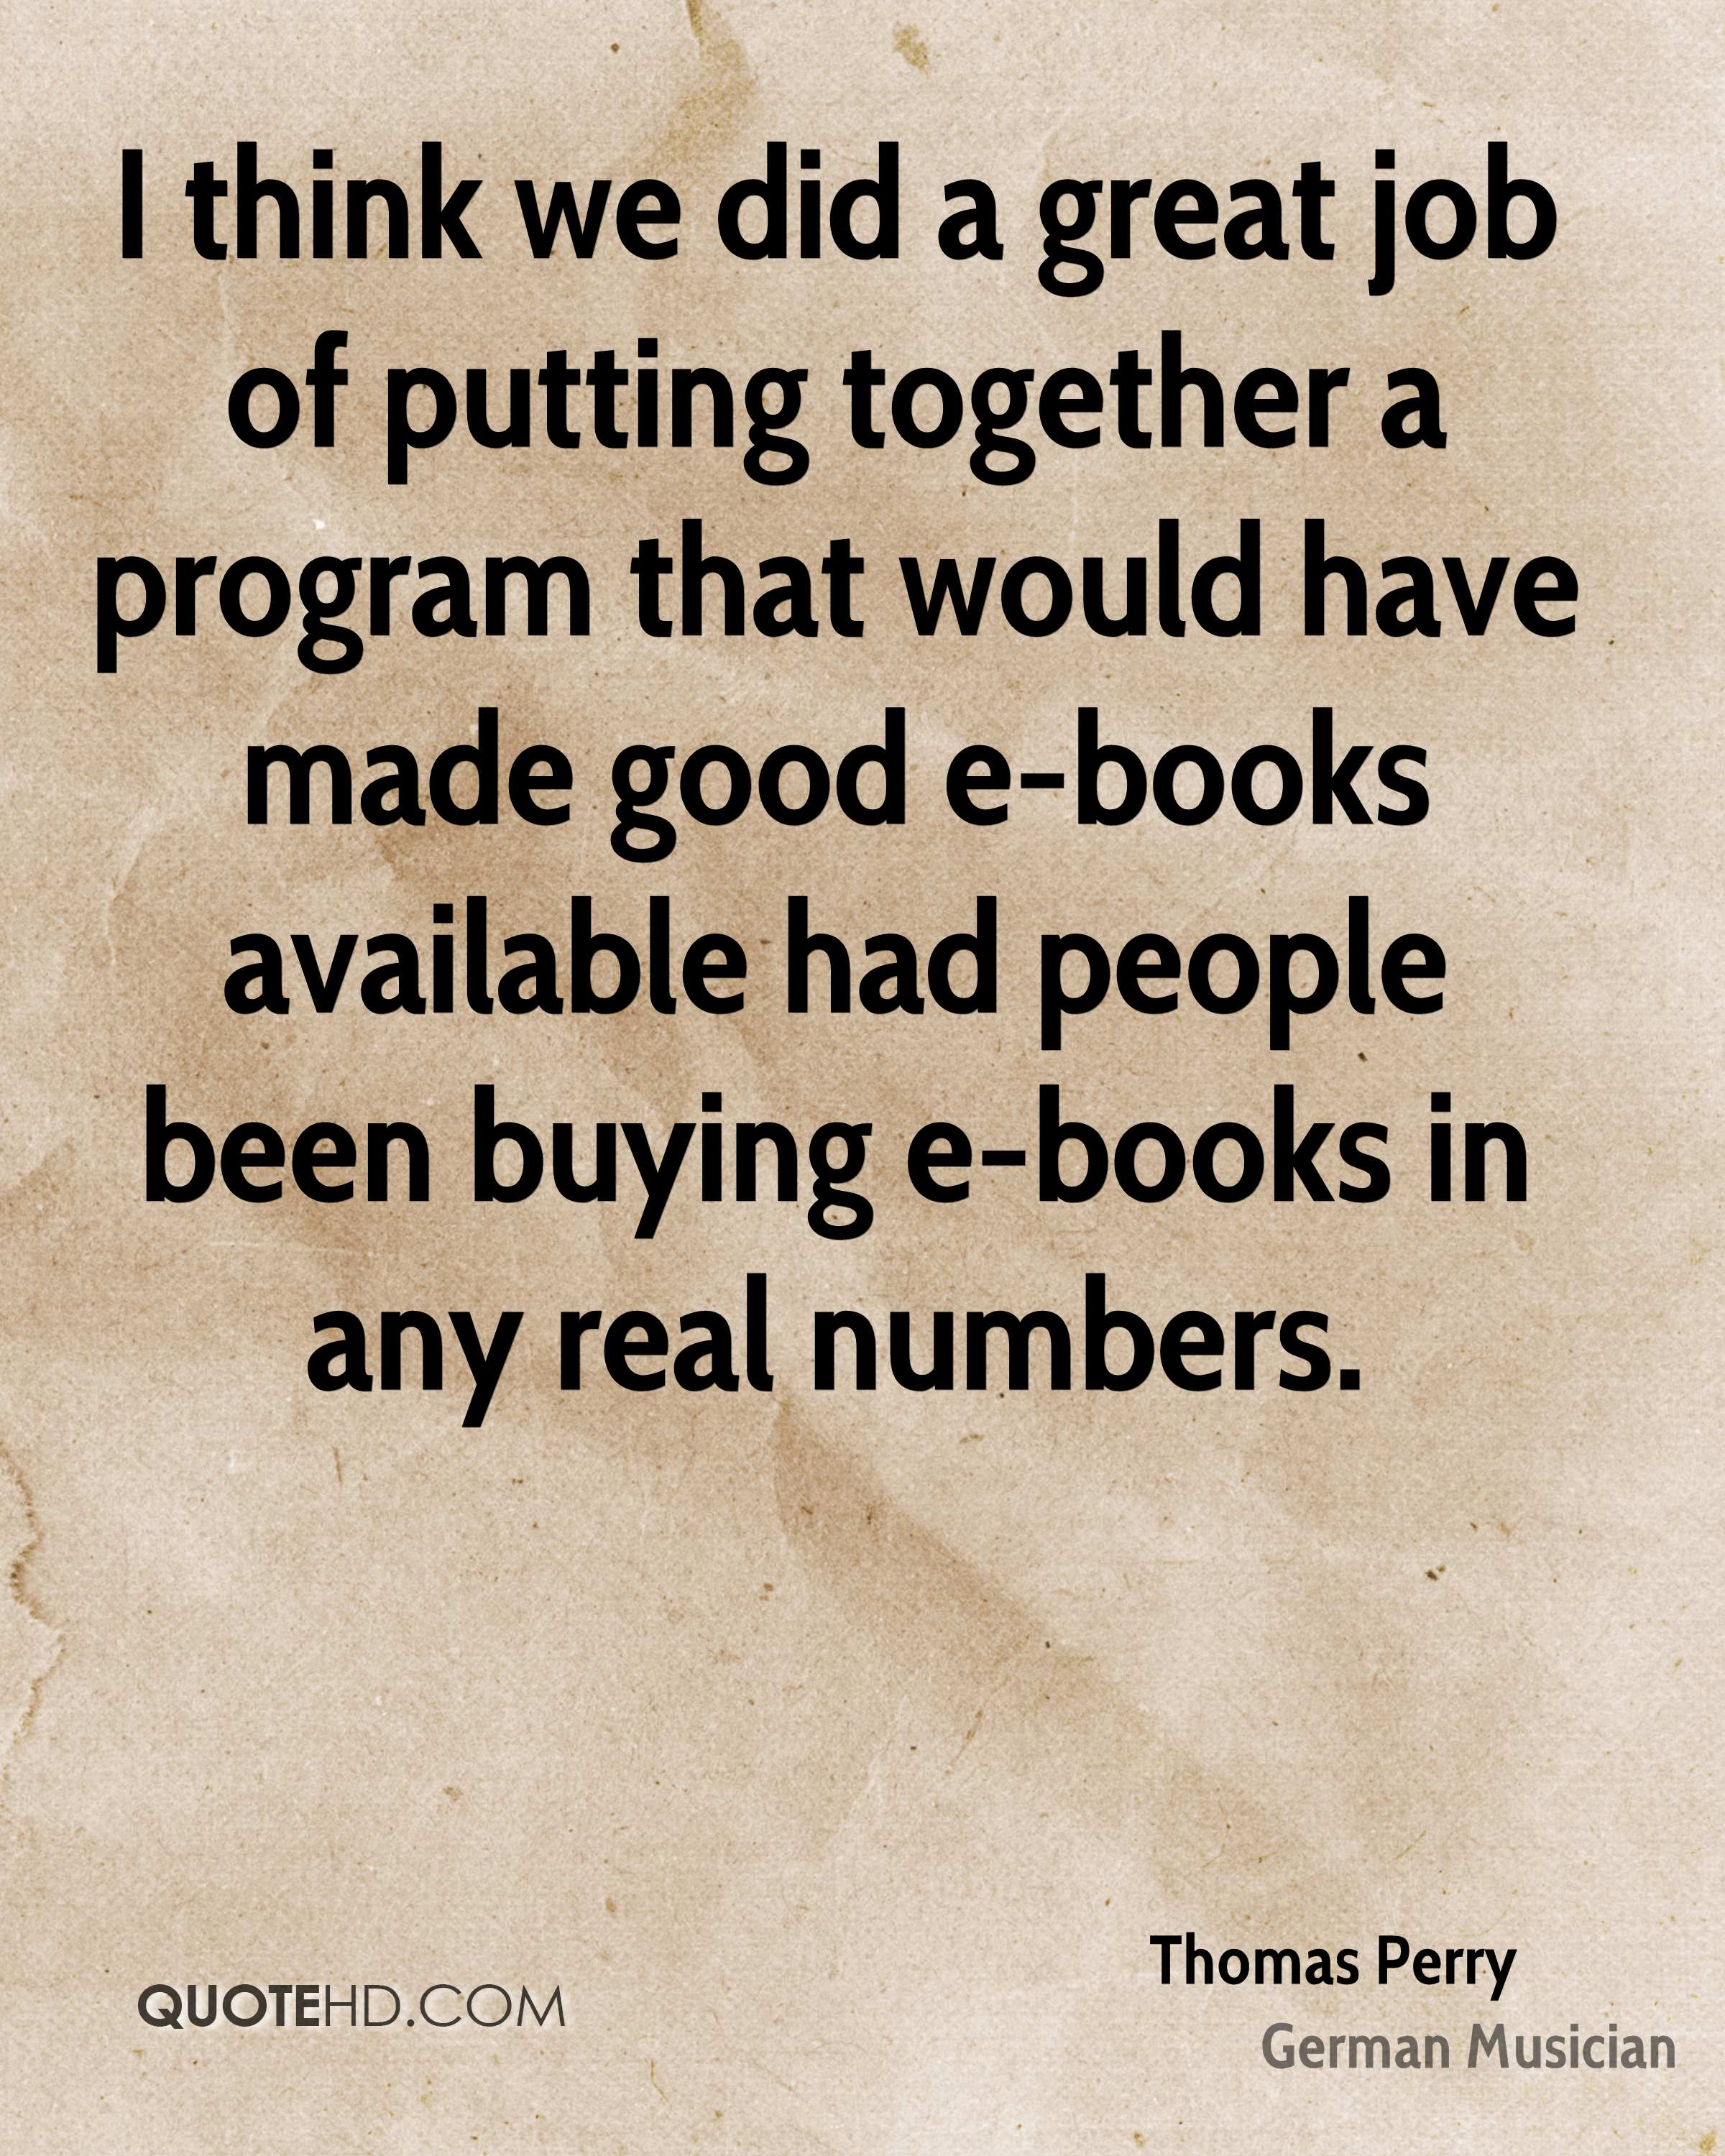 I think we did a great job of putting together a program that would have made good e-books available had people been buying e-books in any real numbers.